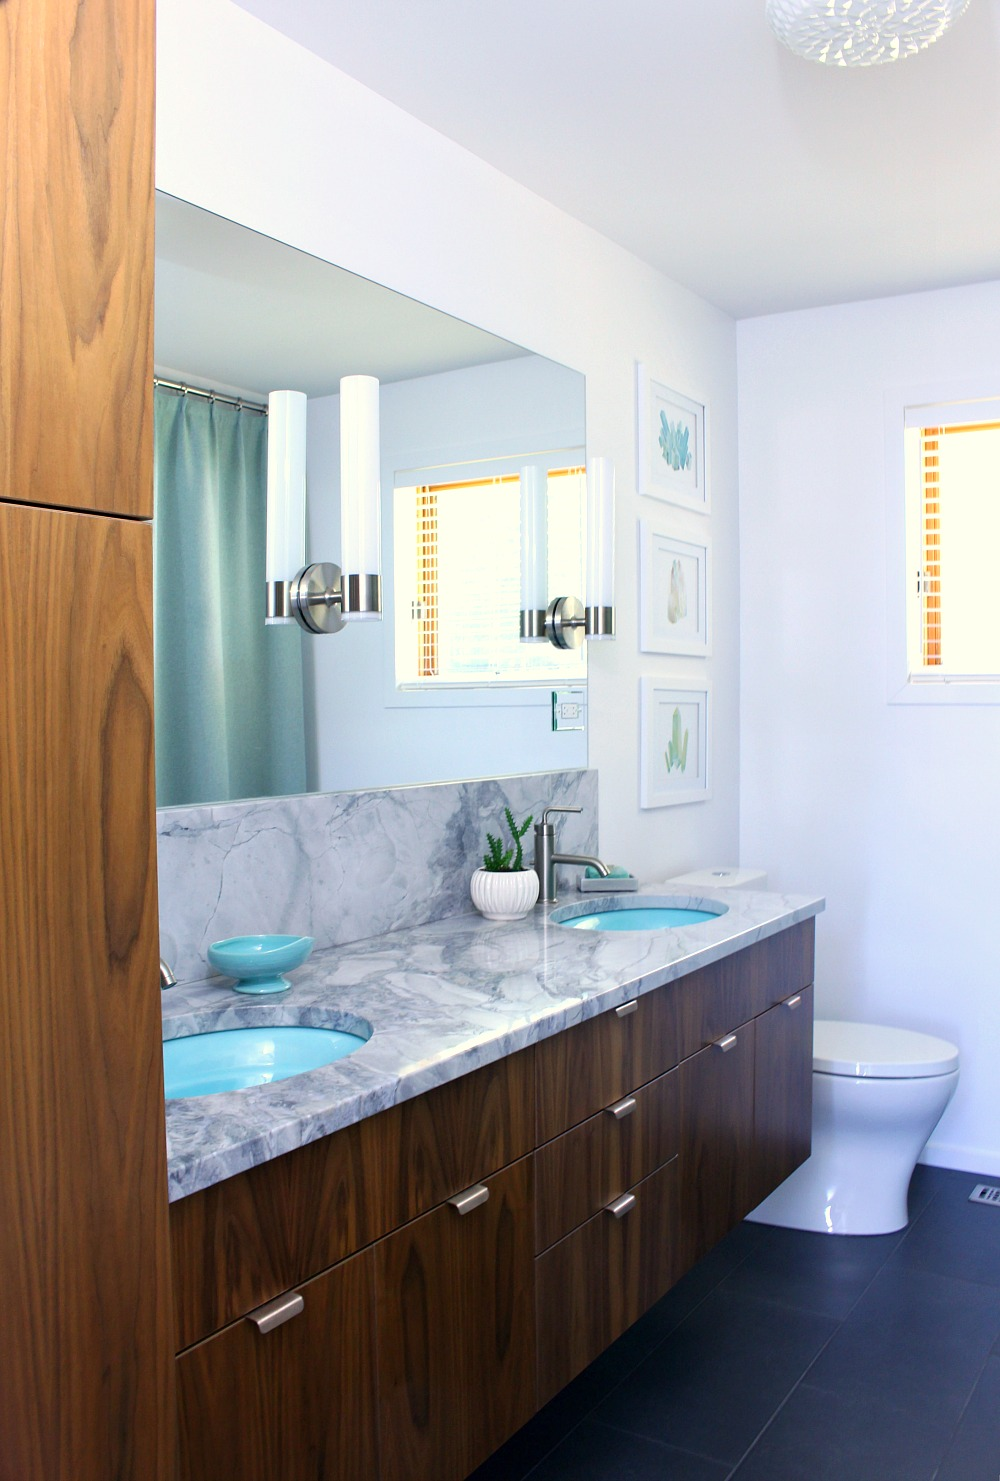 Luxury Mid Century Modern Inspired Bathroom Renovation Before After Floating Walnut Vanity